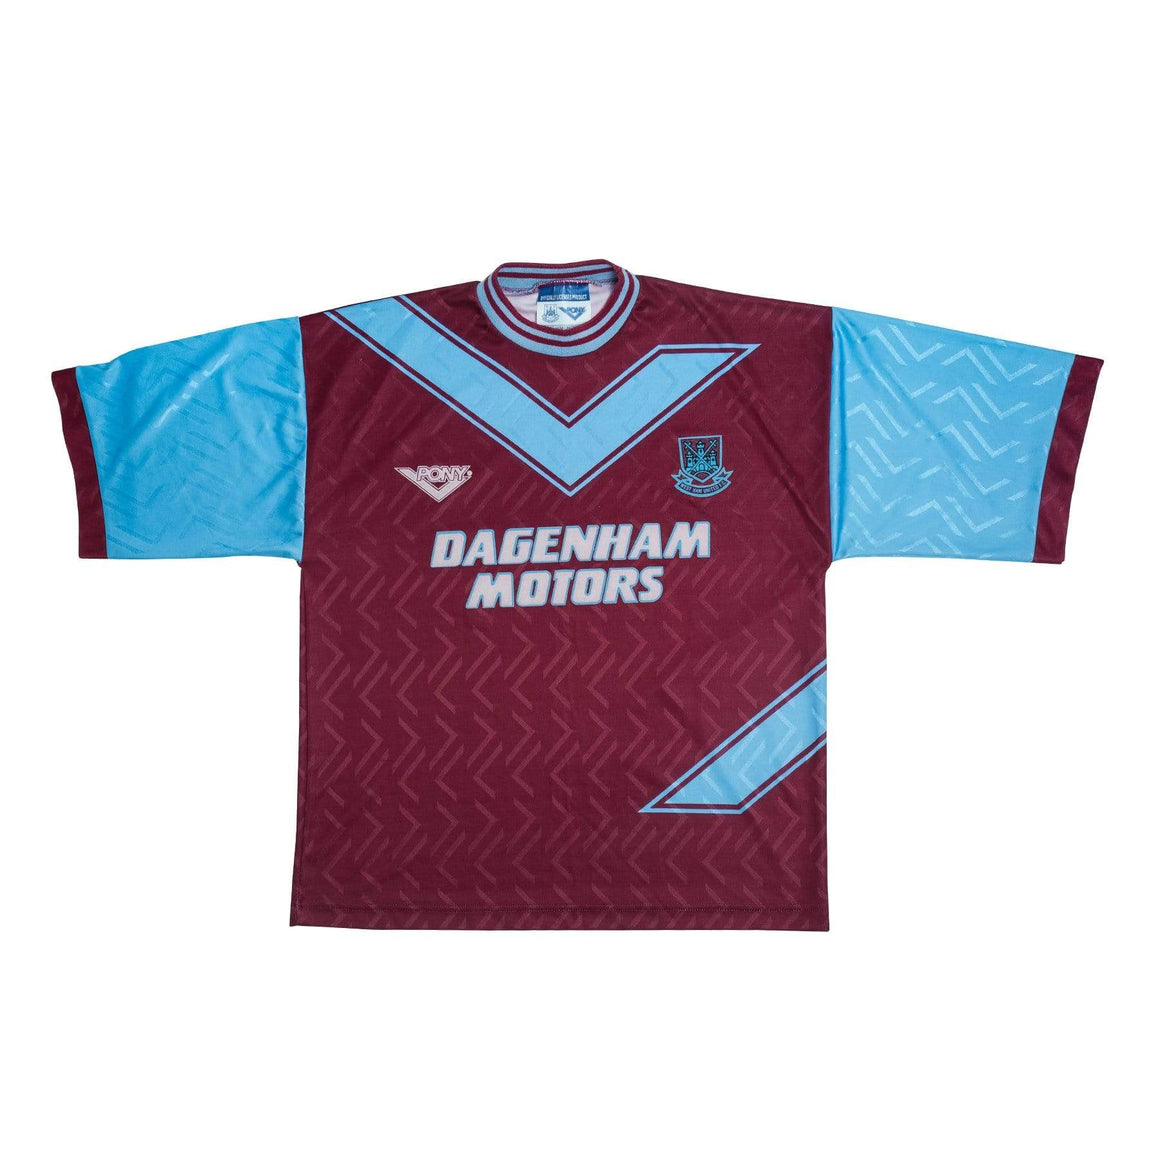 Football Shirt Collective 1993-95 West Ham Home Shirt M Excellent